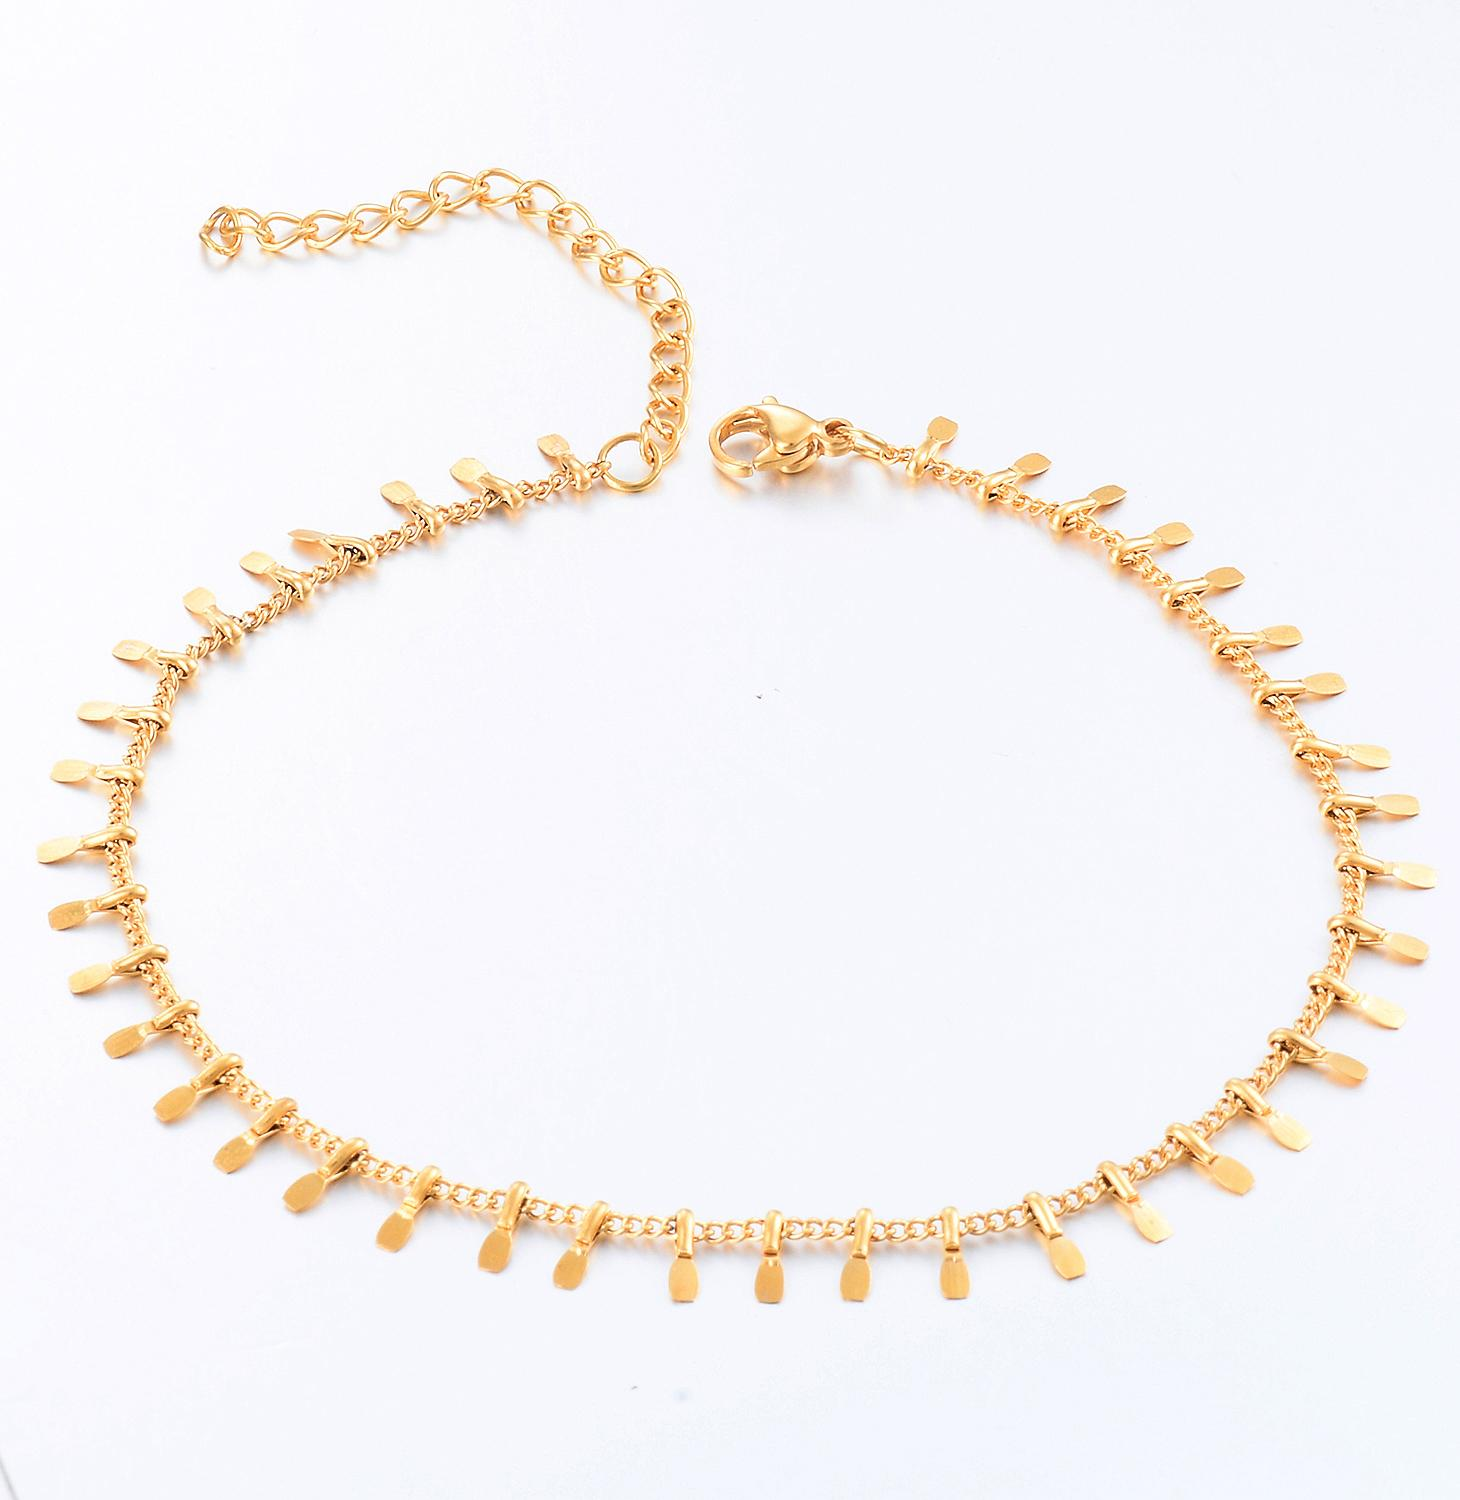 New Stainless Steel Gold Anklet Fashion Personalized High Quality Fashion Jewelry